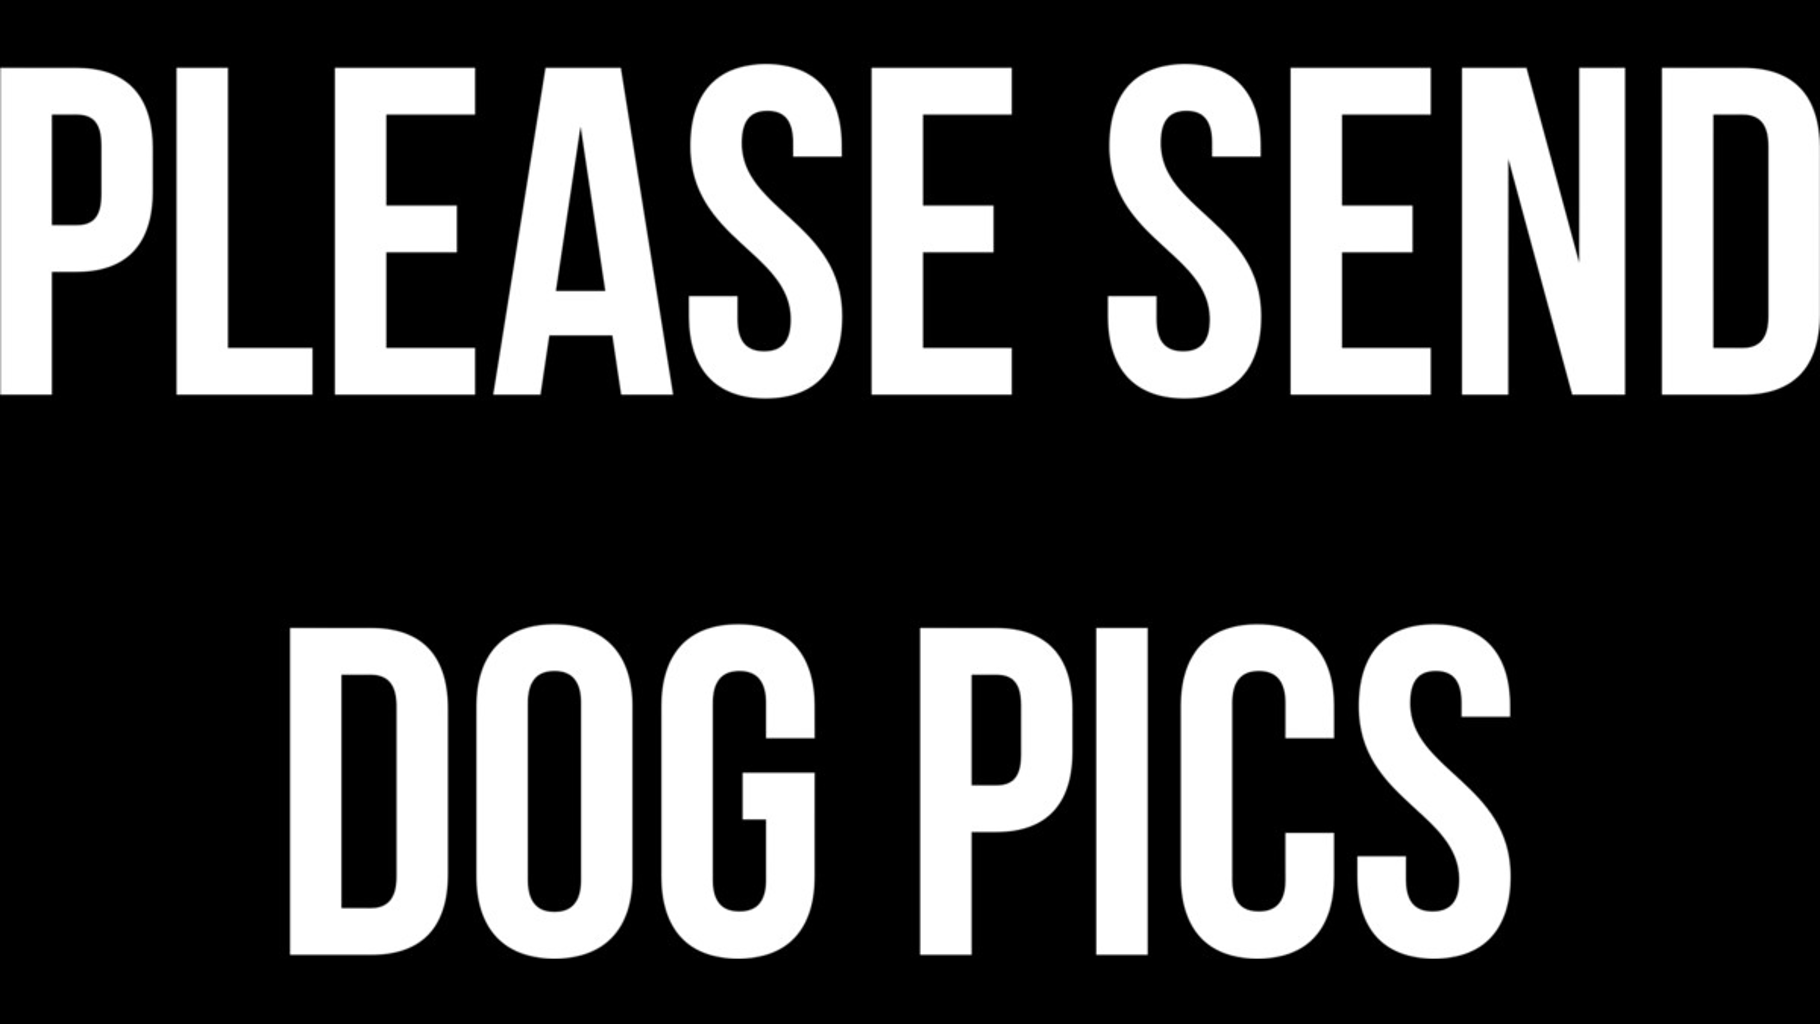 Design by Humans: Please Send Dog Pics Motivational Design